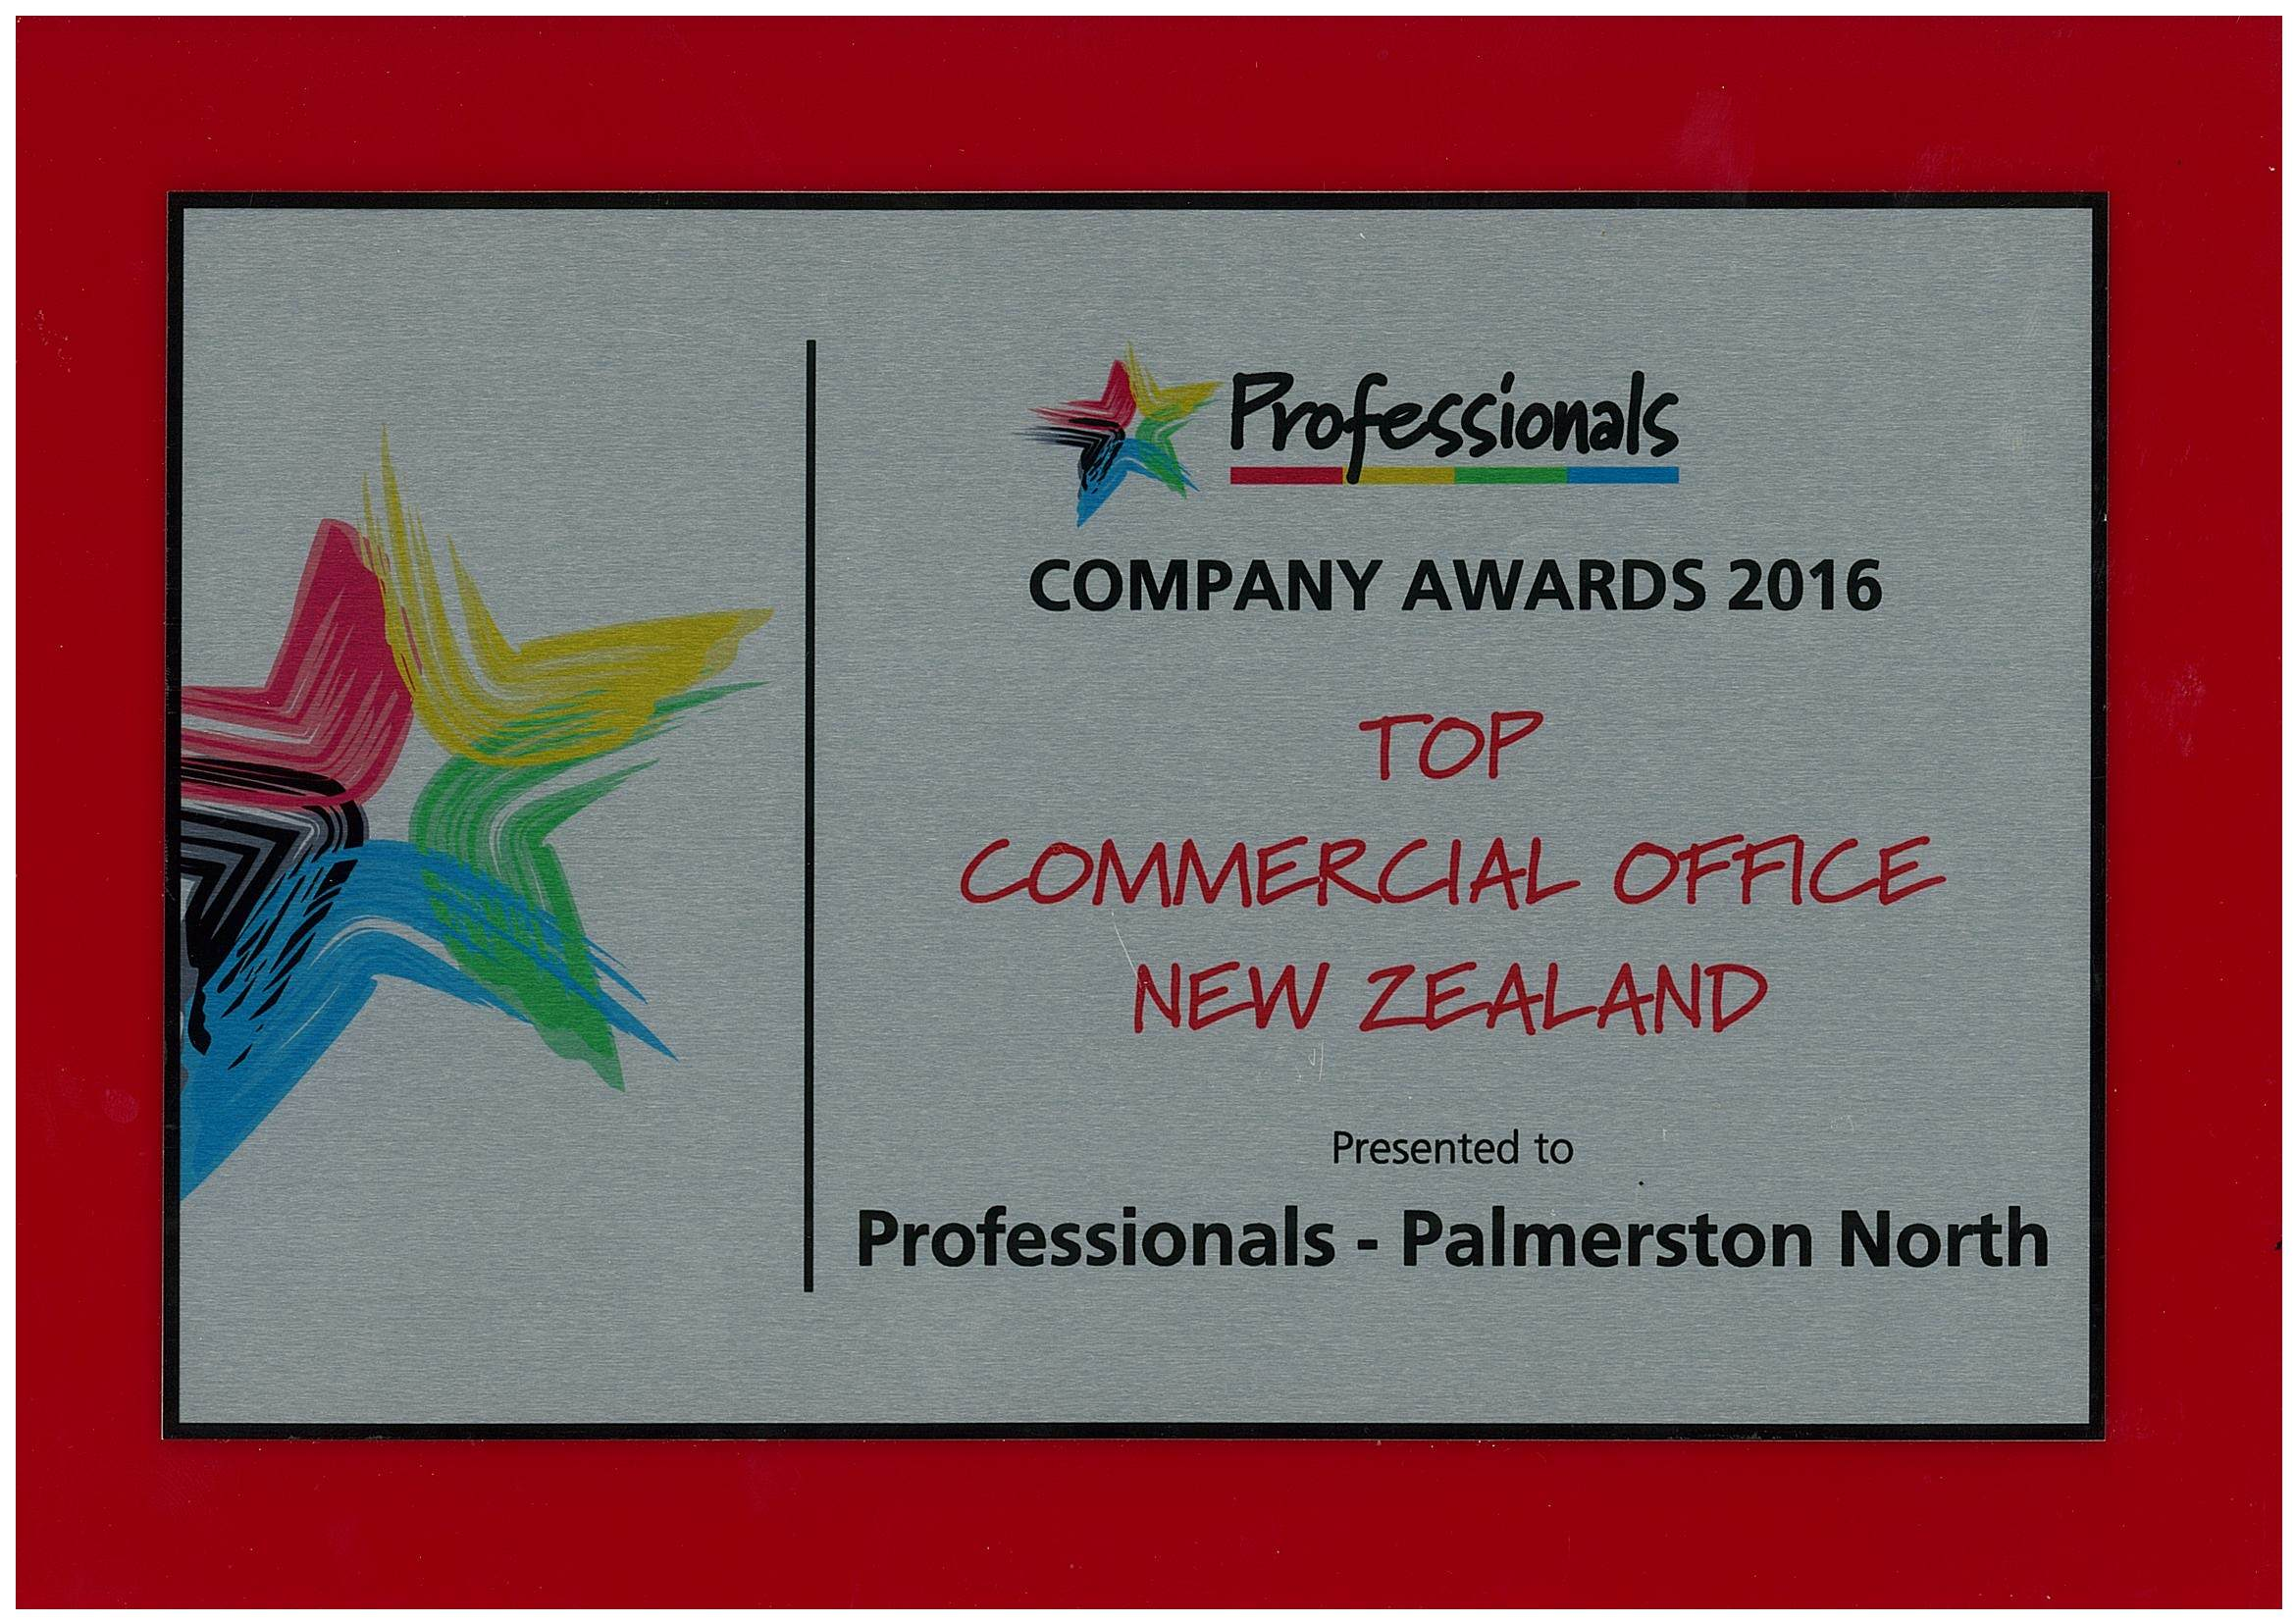 Commercial Office Award 2016